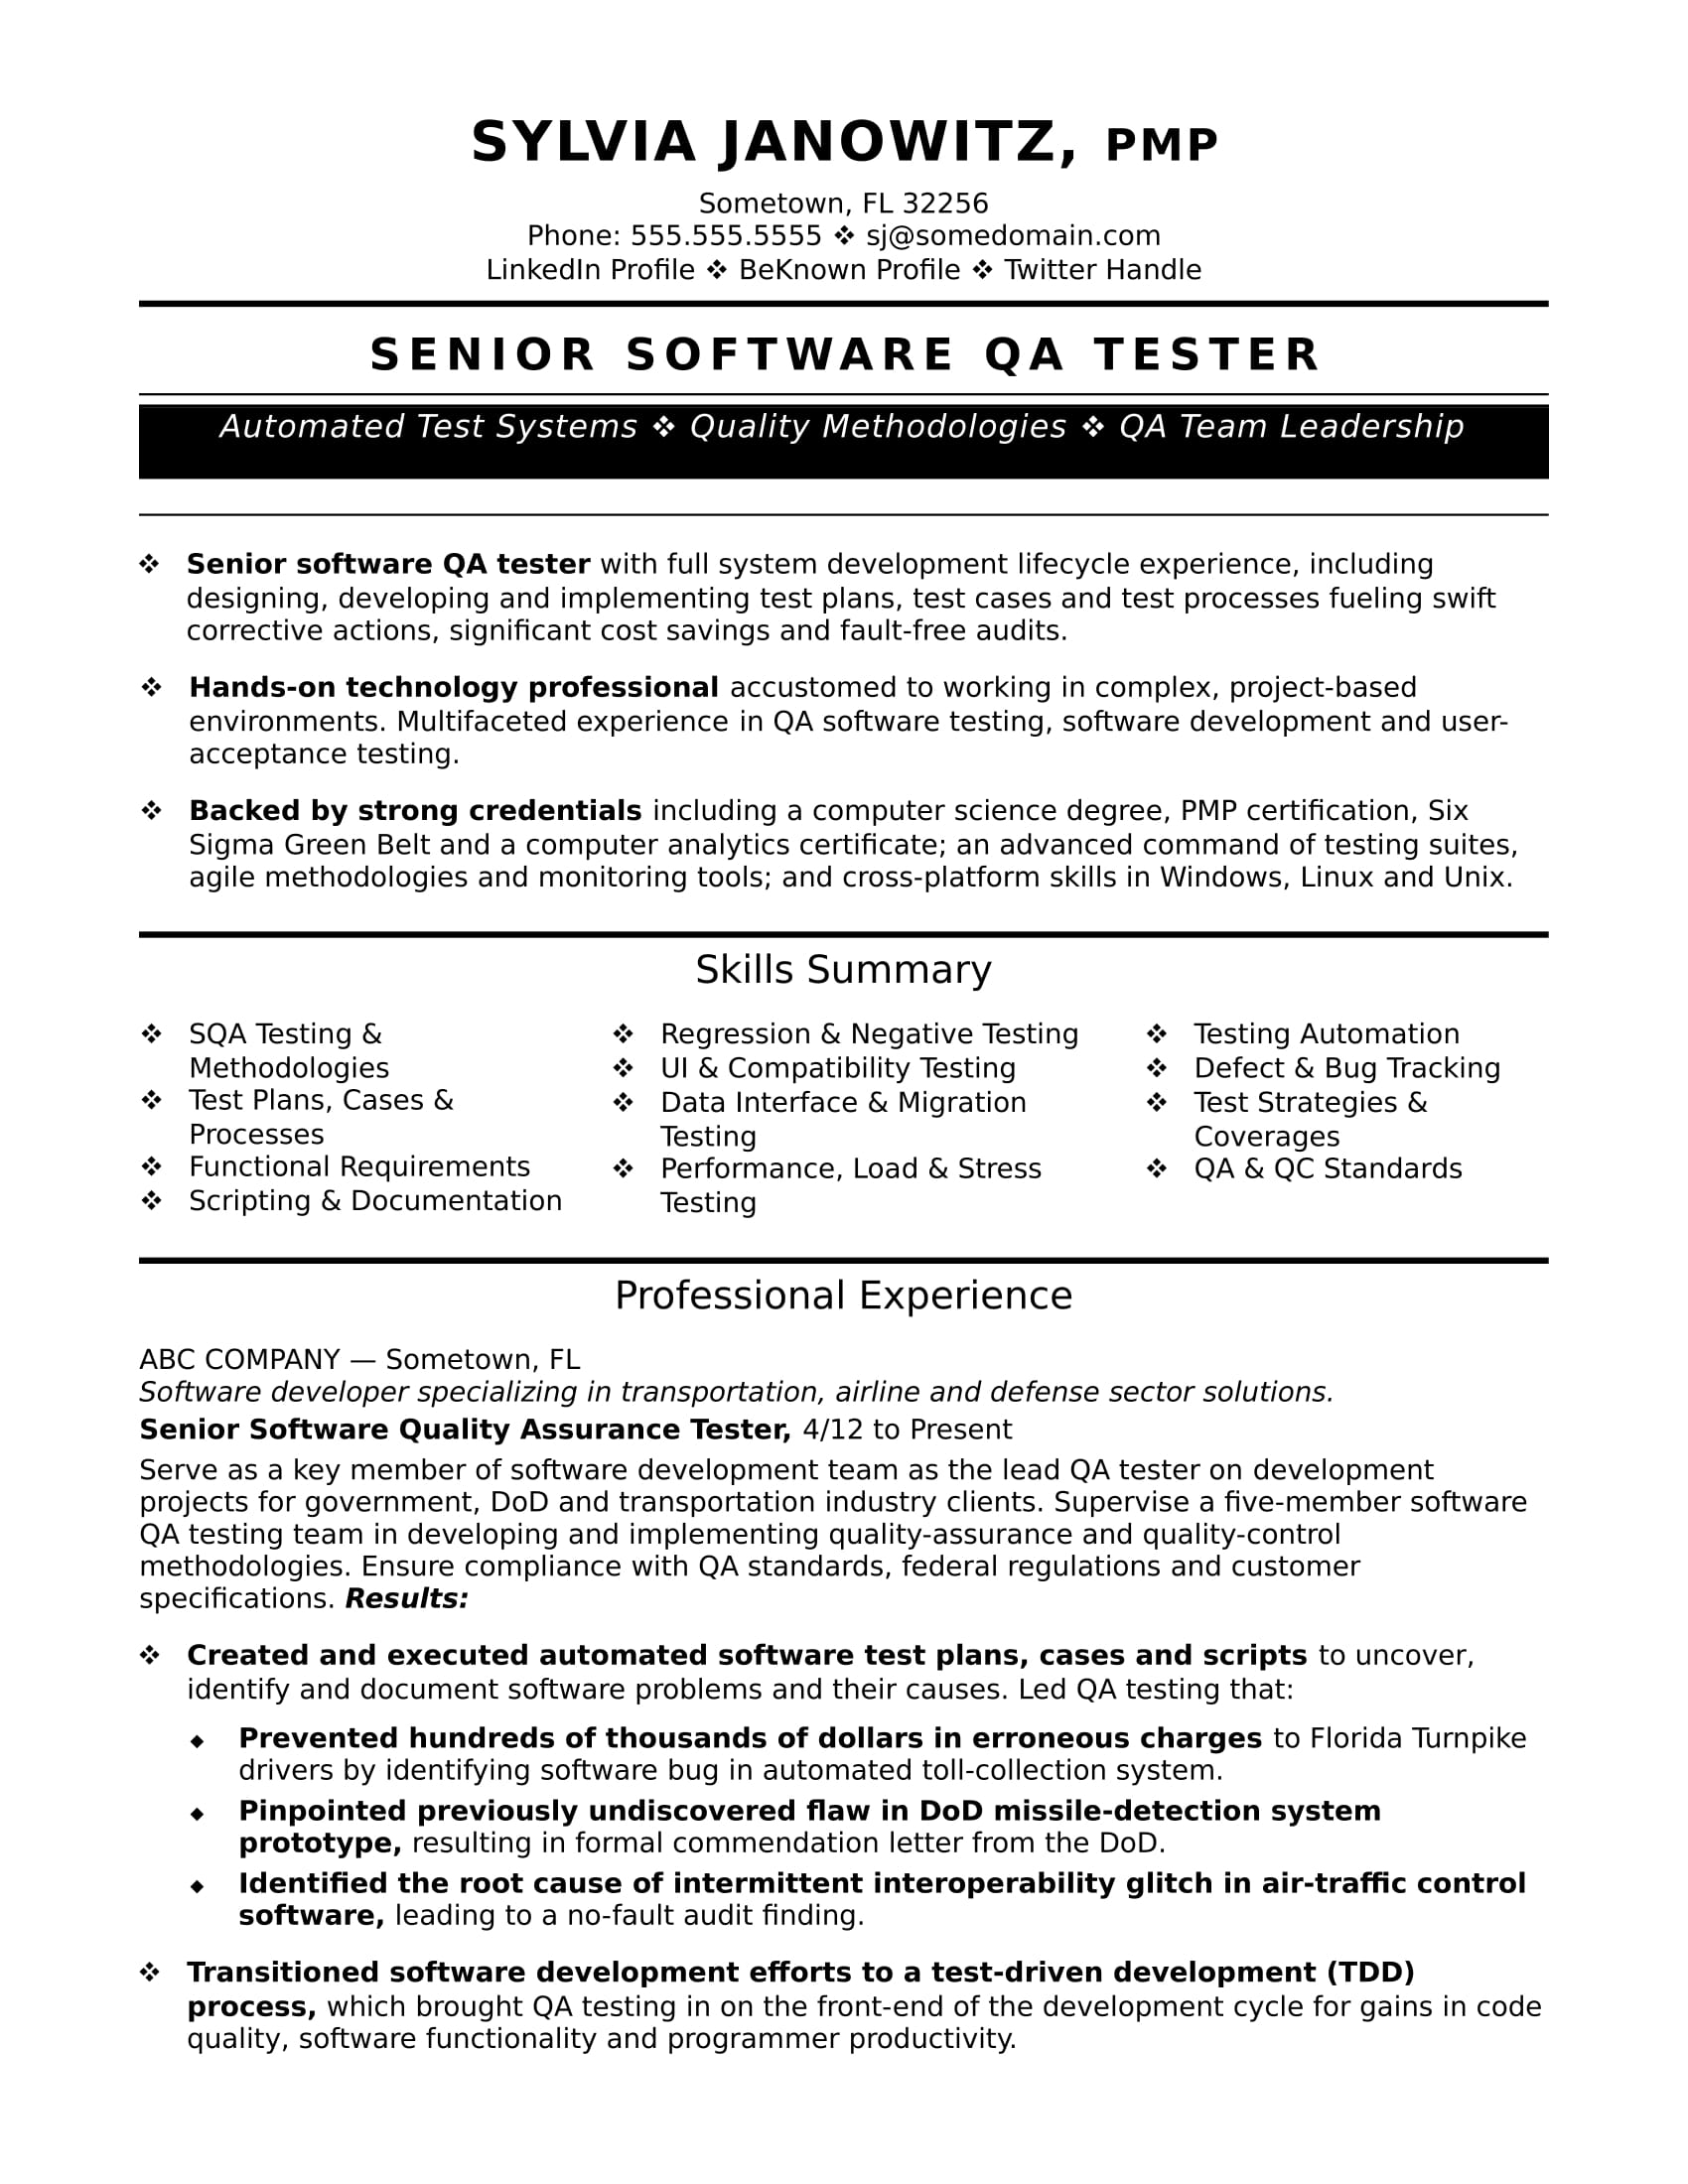 experienced qa software tester resume sample - Experienced It Professional Resume Samples